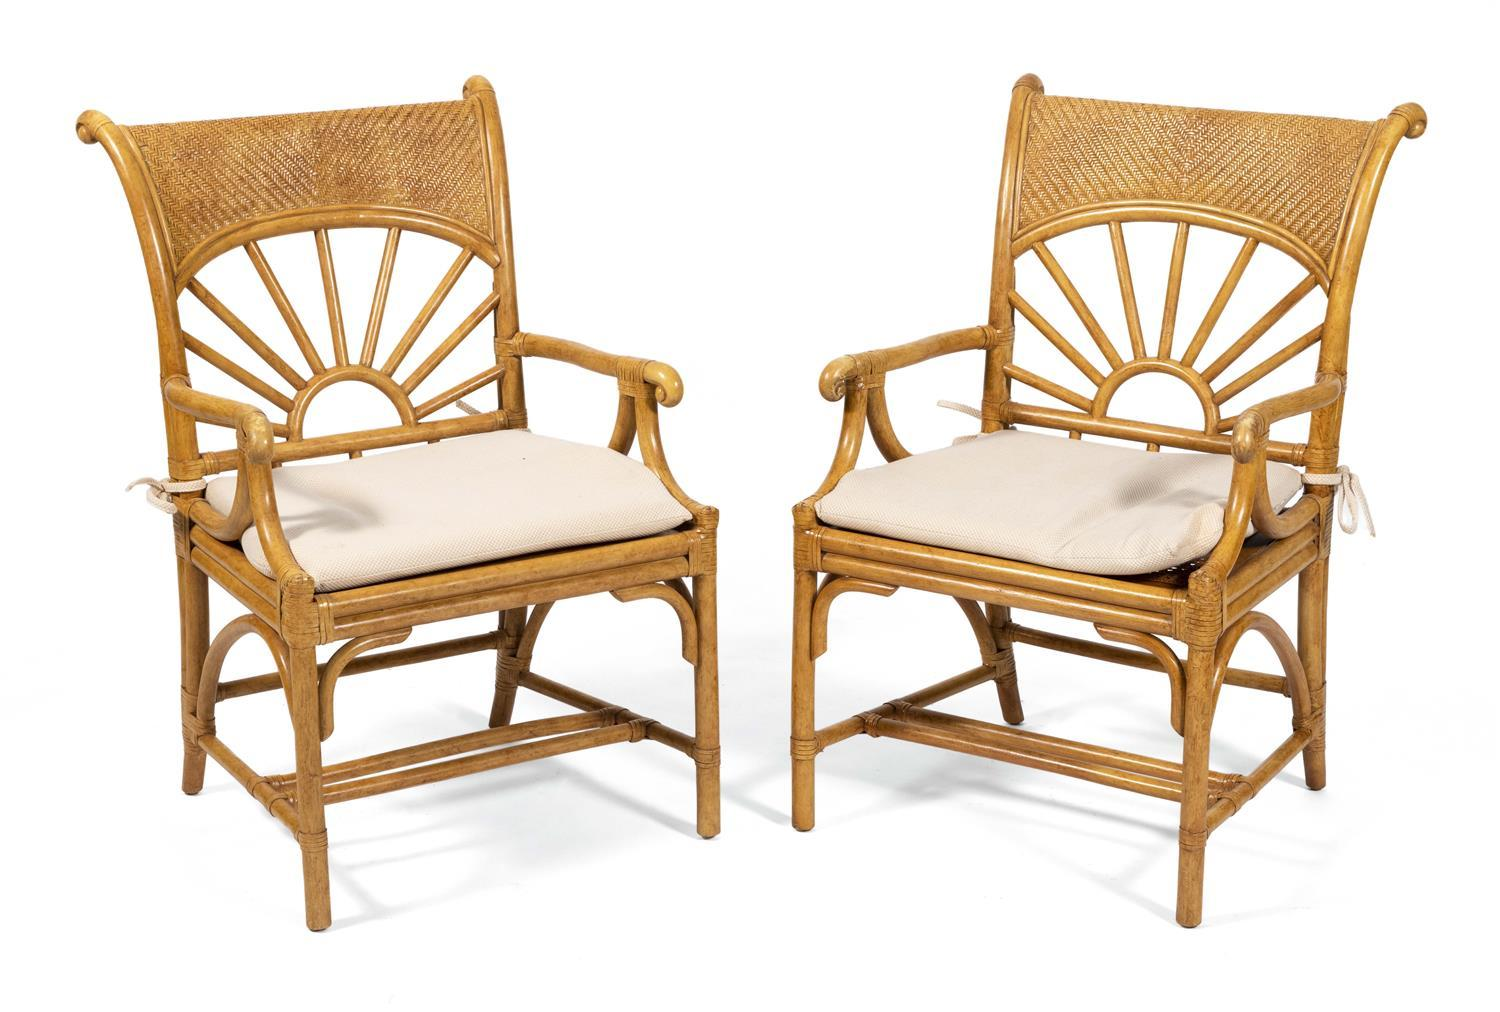 PAIR OF RATTAN ARMCHAIRS Mid-20th Century